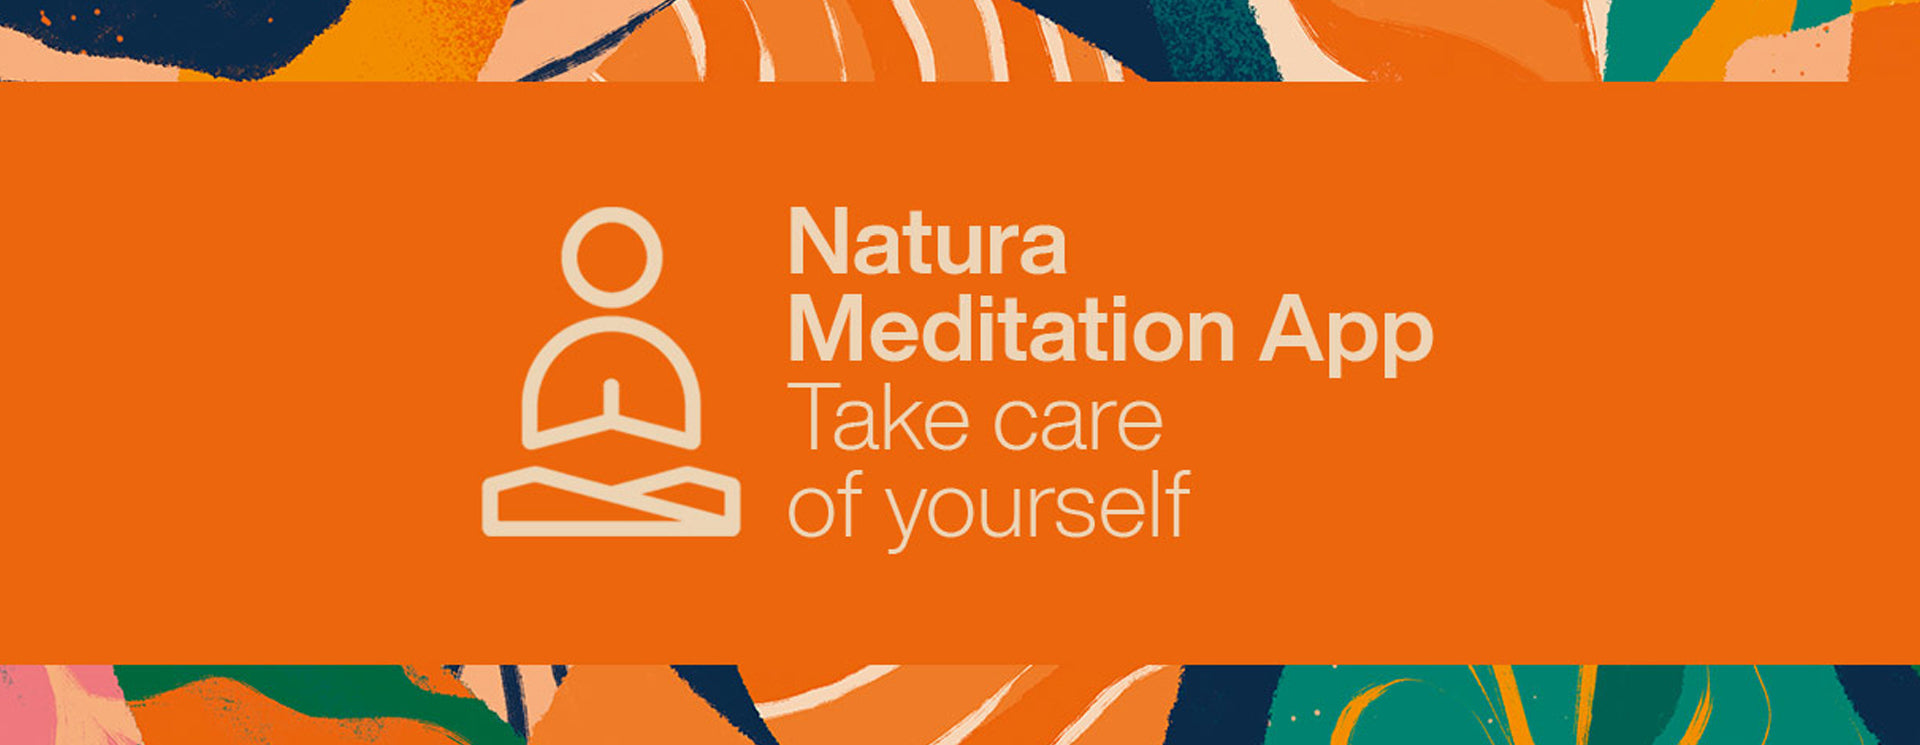 Meditation Natura: Meditate Any Time Of The Day With Our App